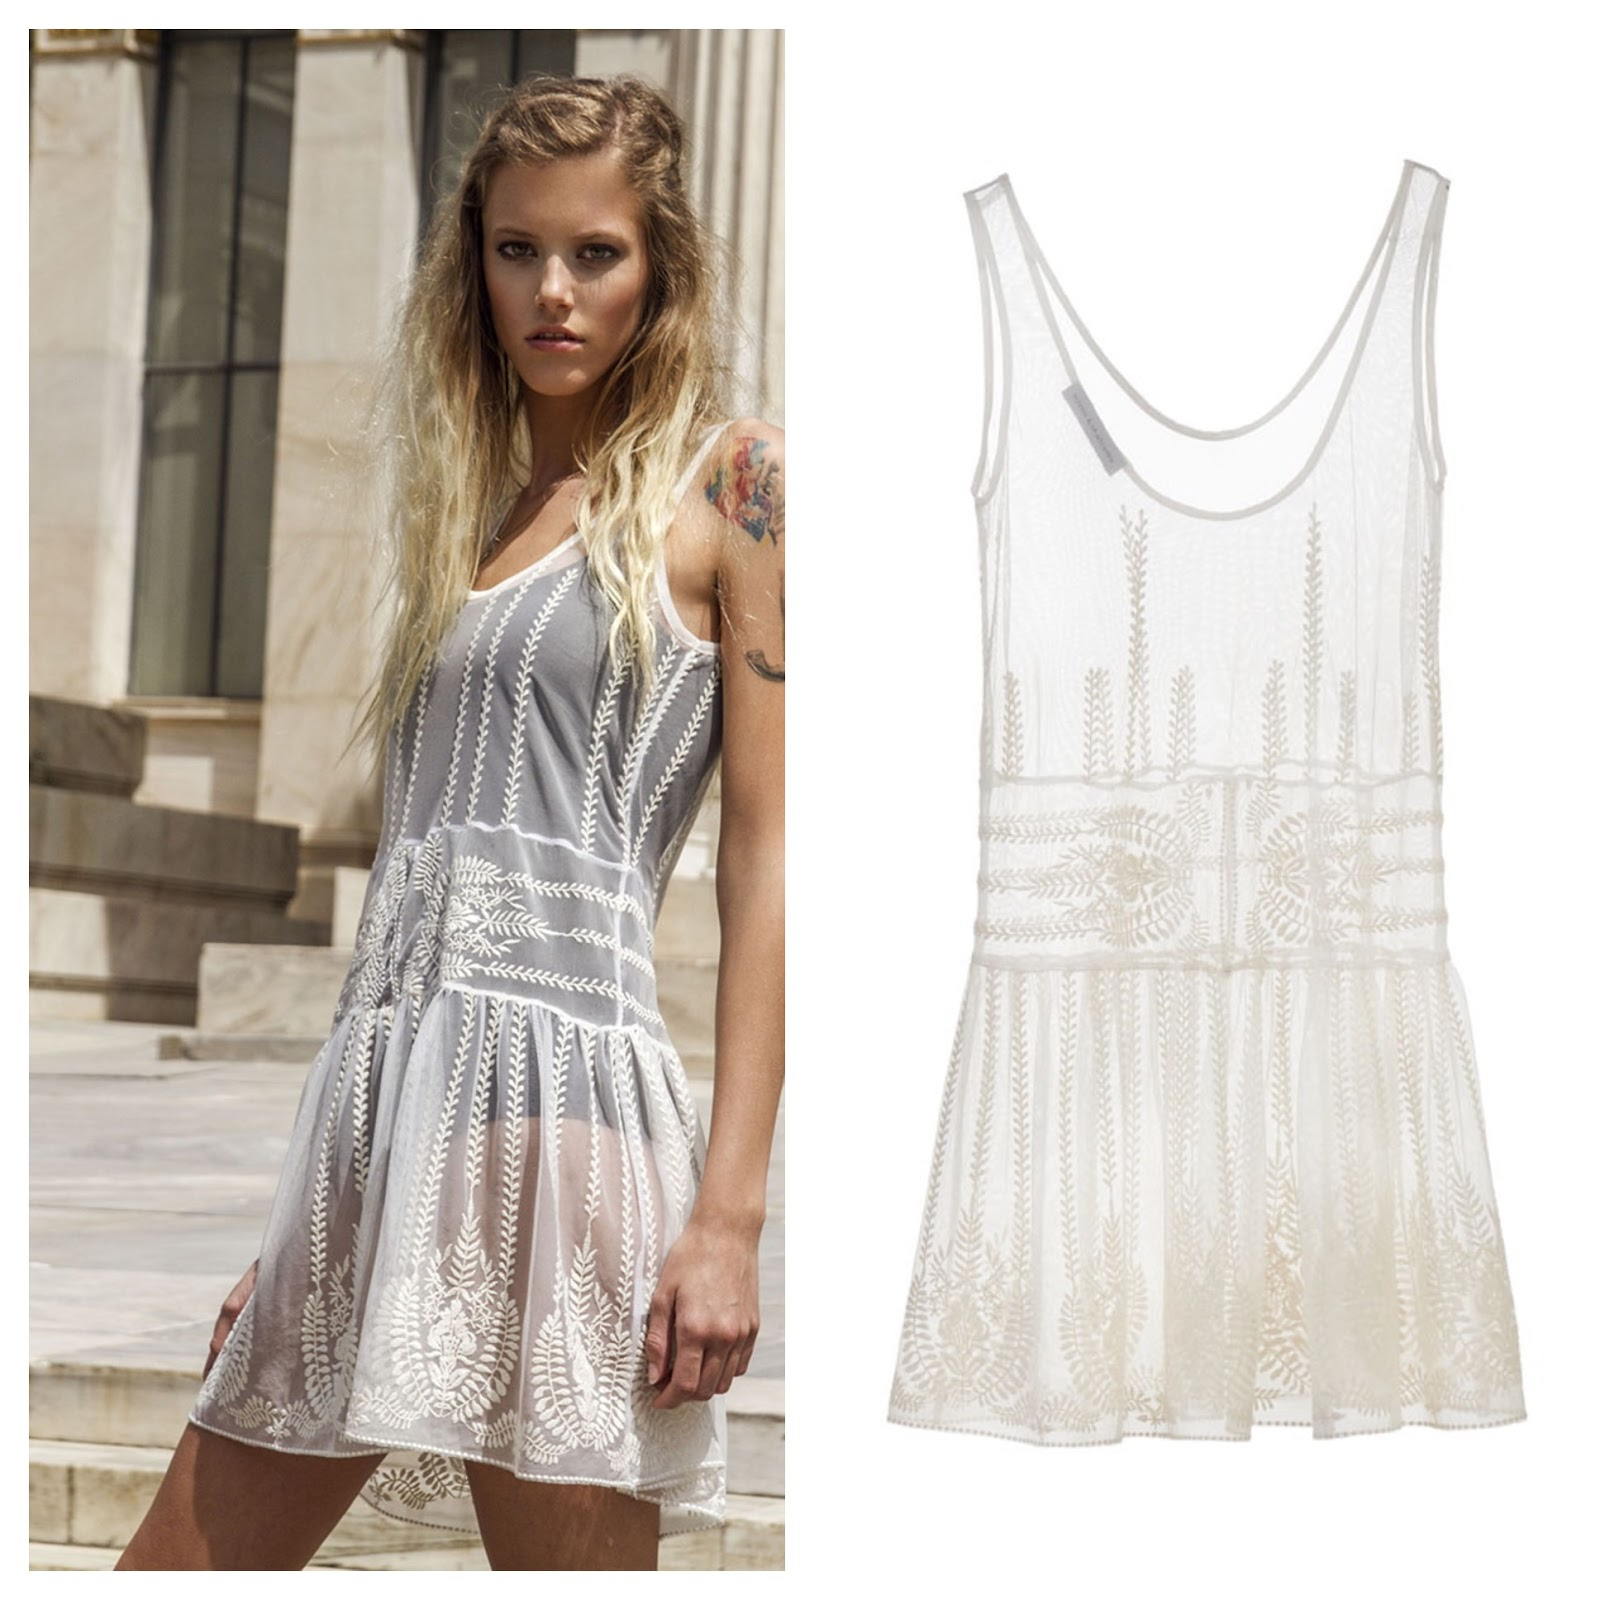 b075a79ce132 The White Knitted Tulle Mini Dress